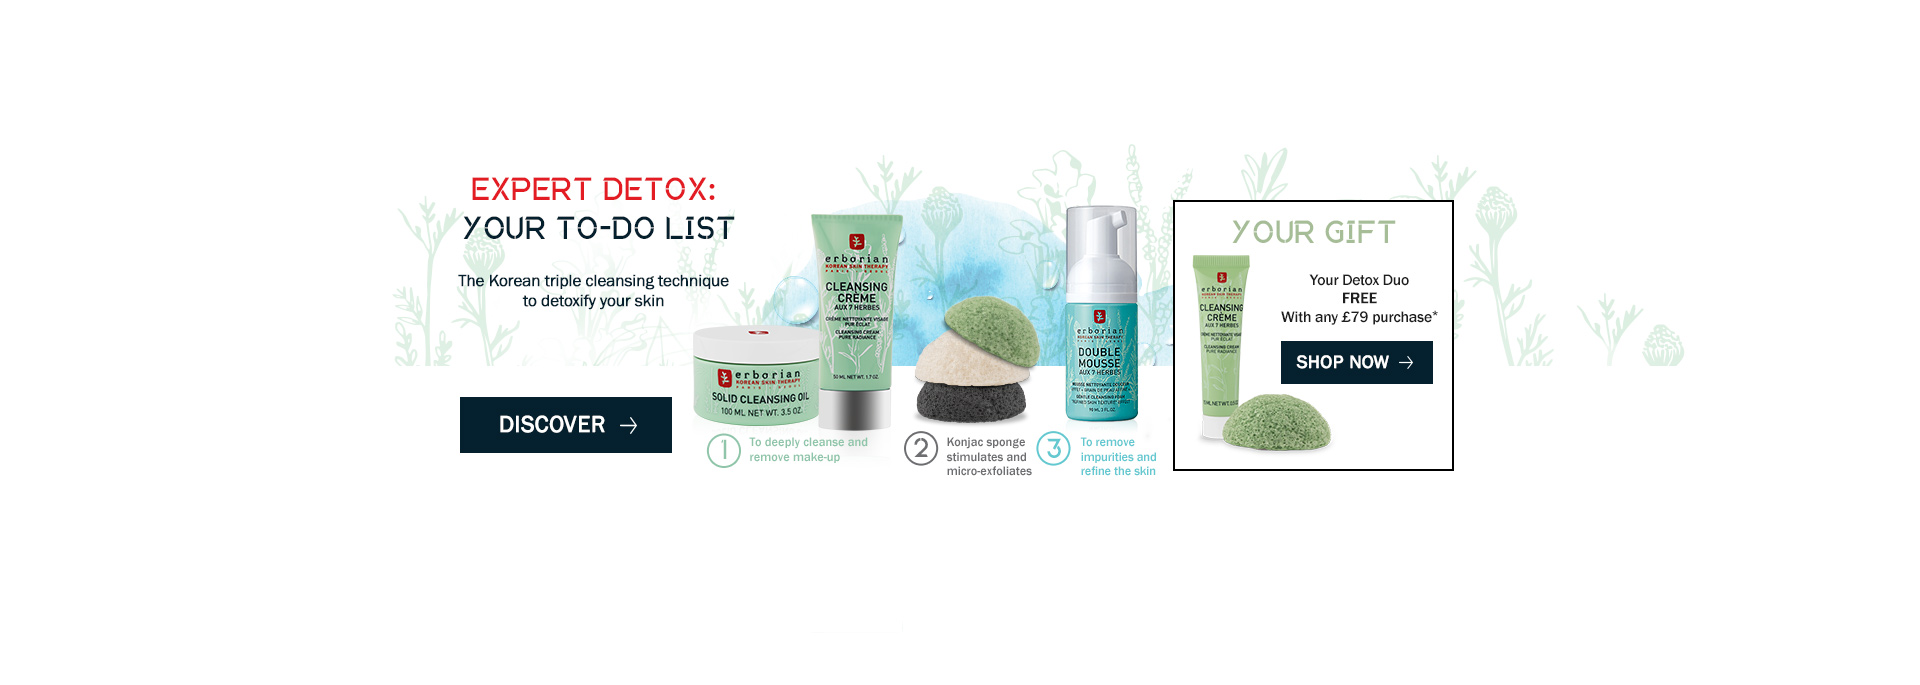 Your detox to do list and your offer : Receive your detox duo with any £79 purchase